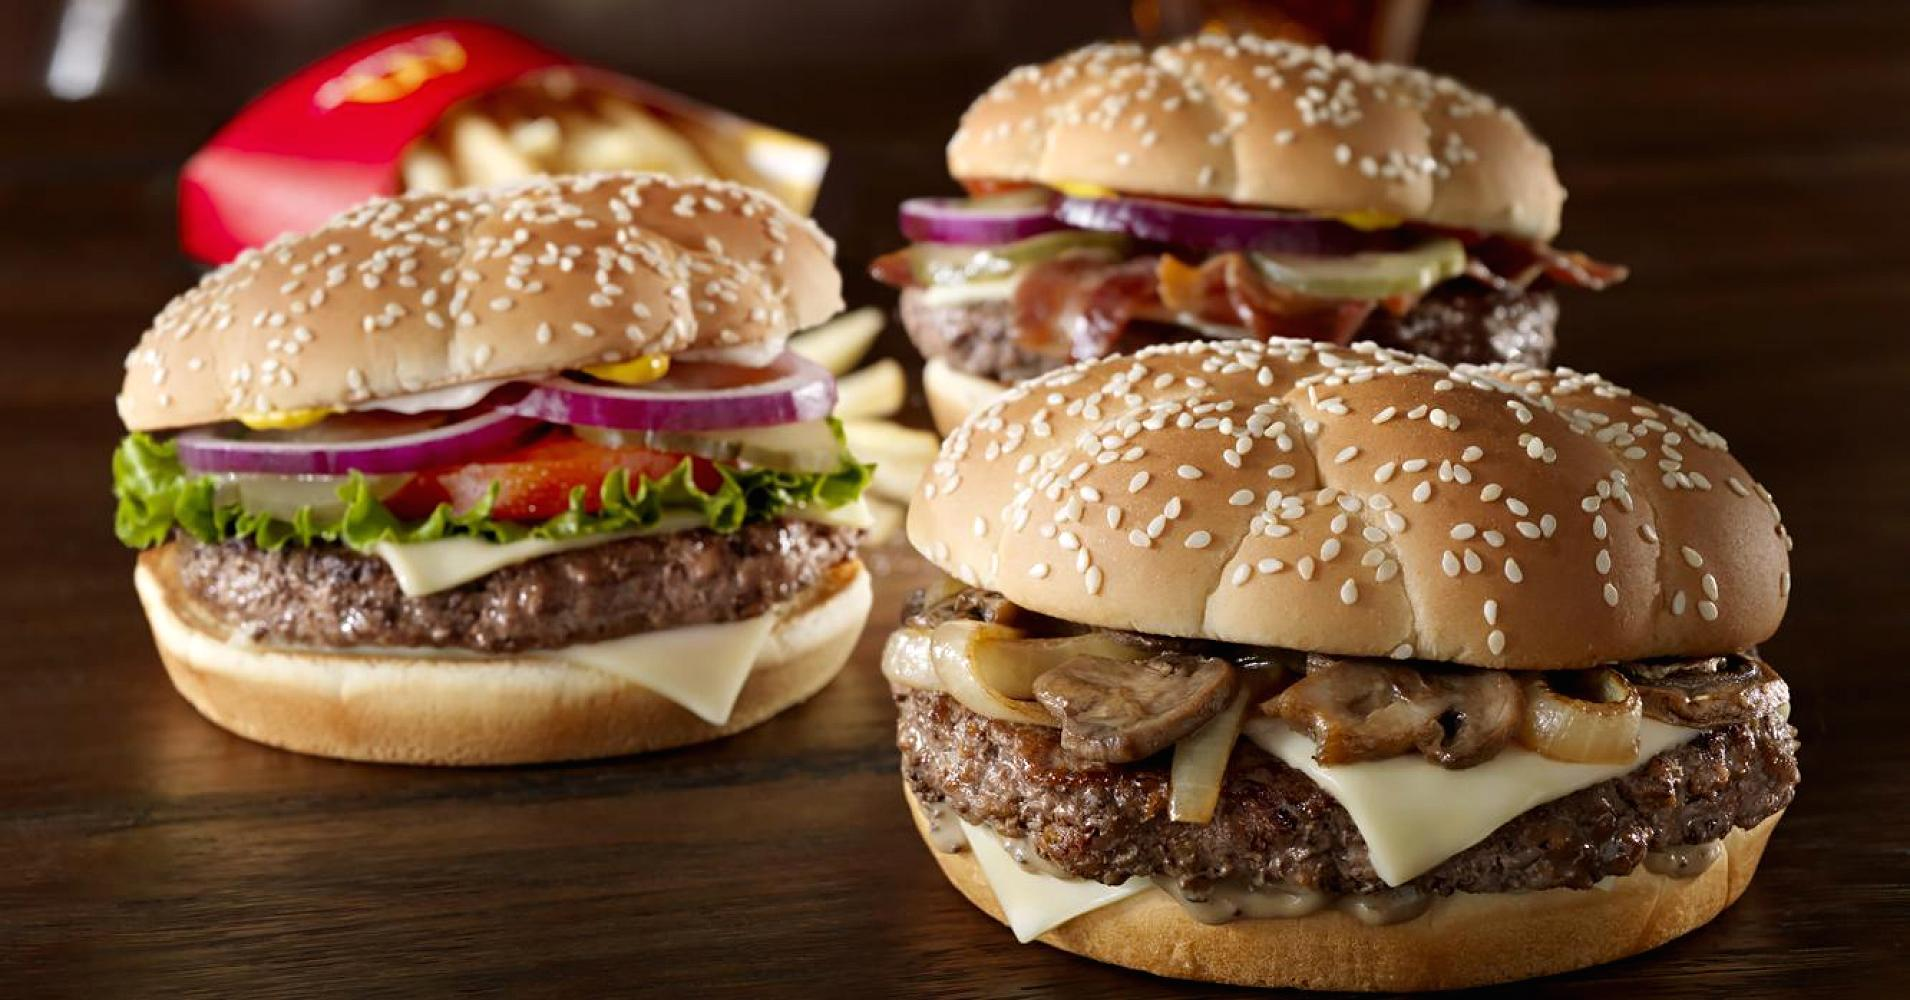 Meat from fast food restaurants' hamburgers